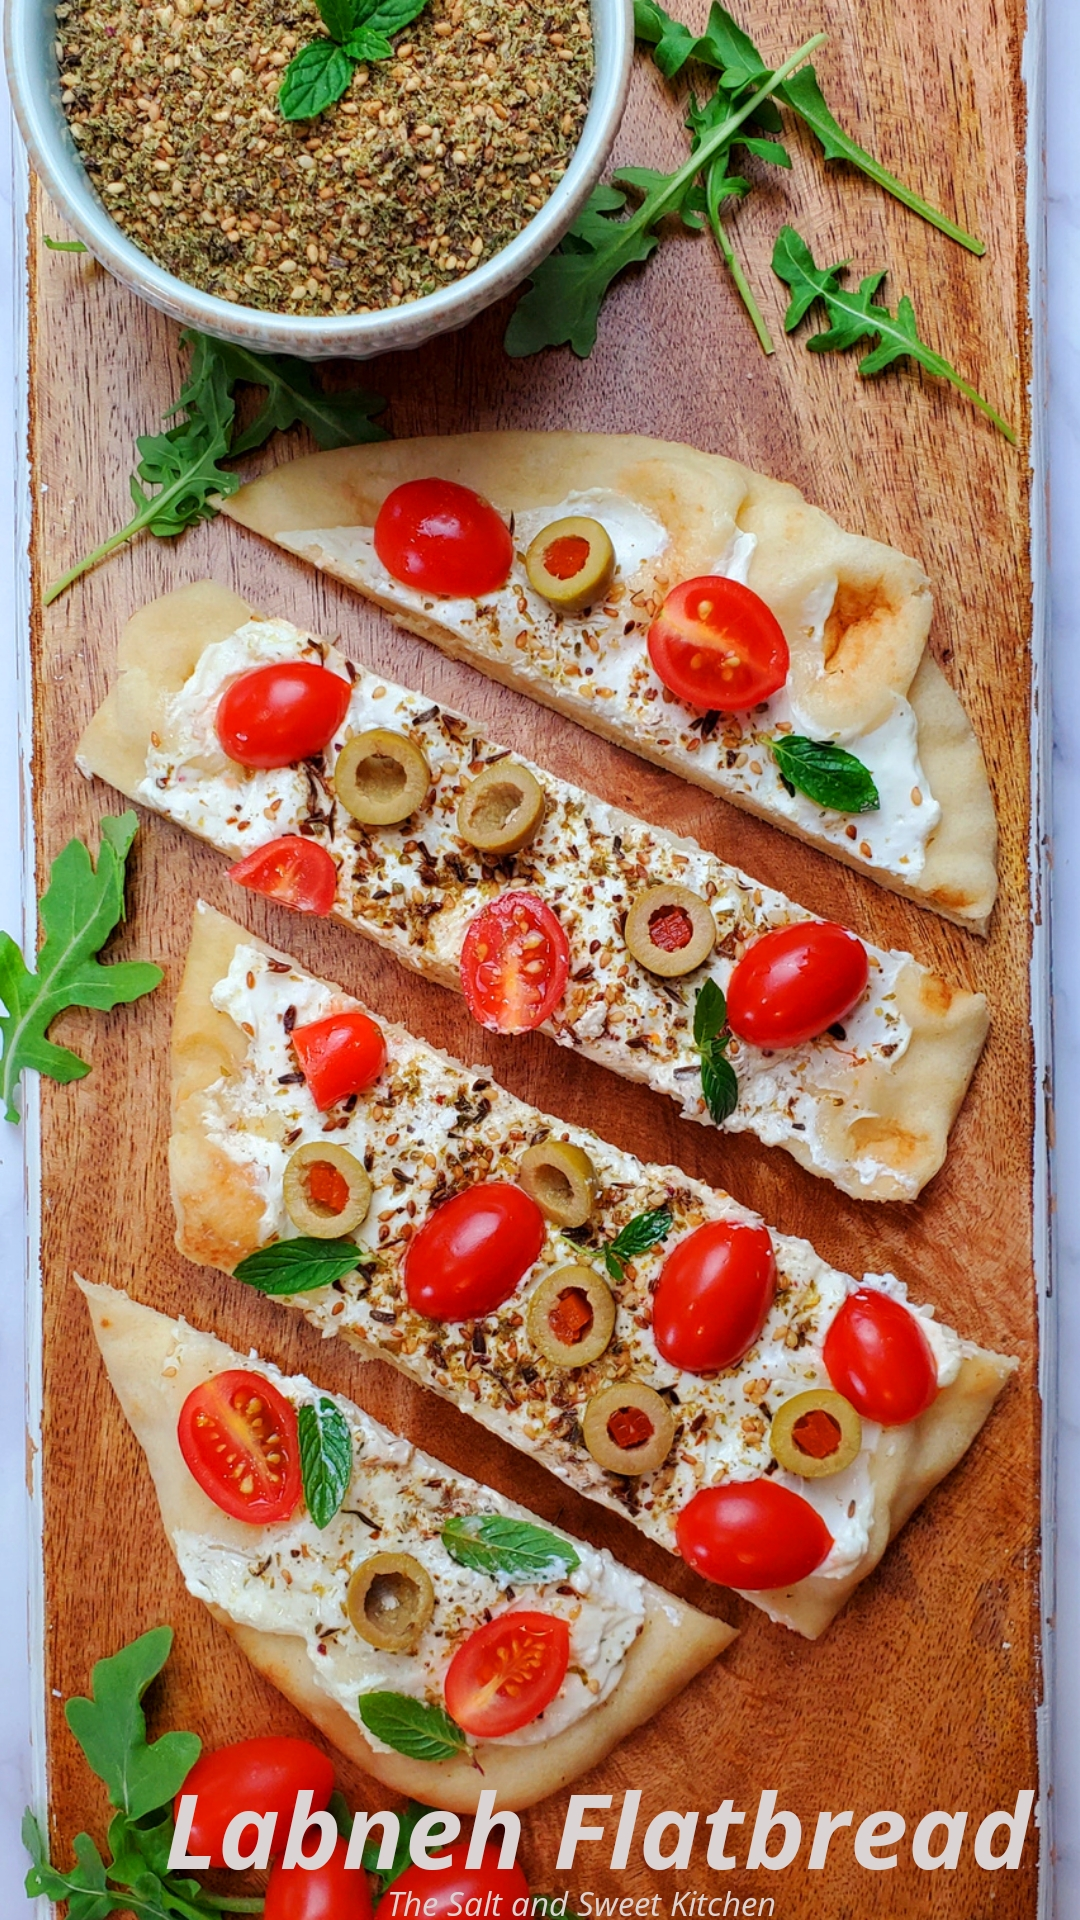 Are you looking for naan flatbread recipes? This Labneh flatbread topped with labneh spread, olives, zaatar and mint is a must try!